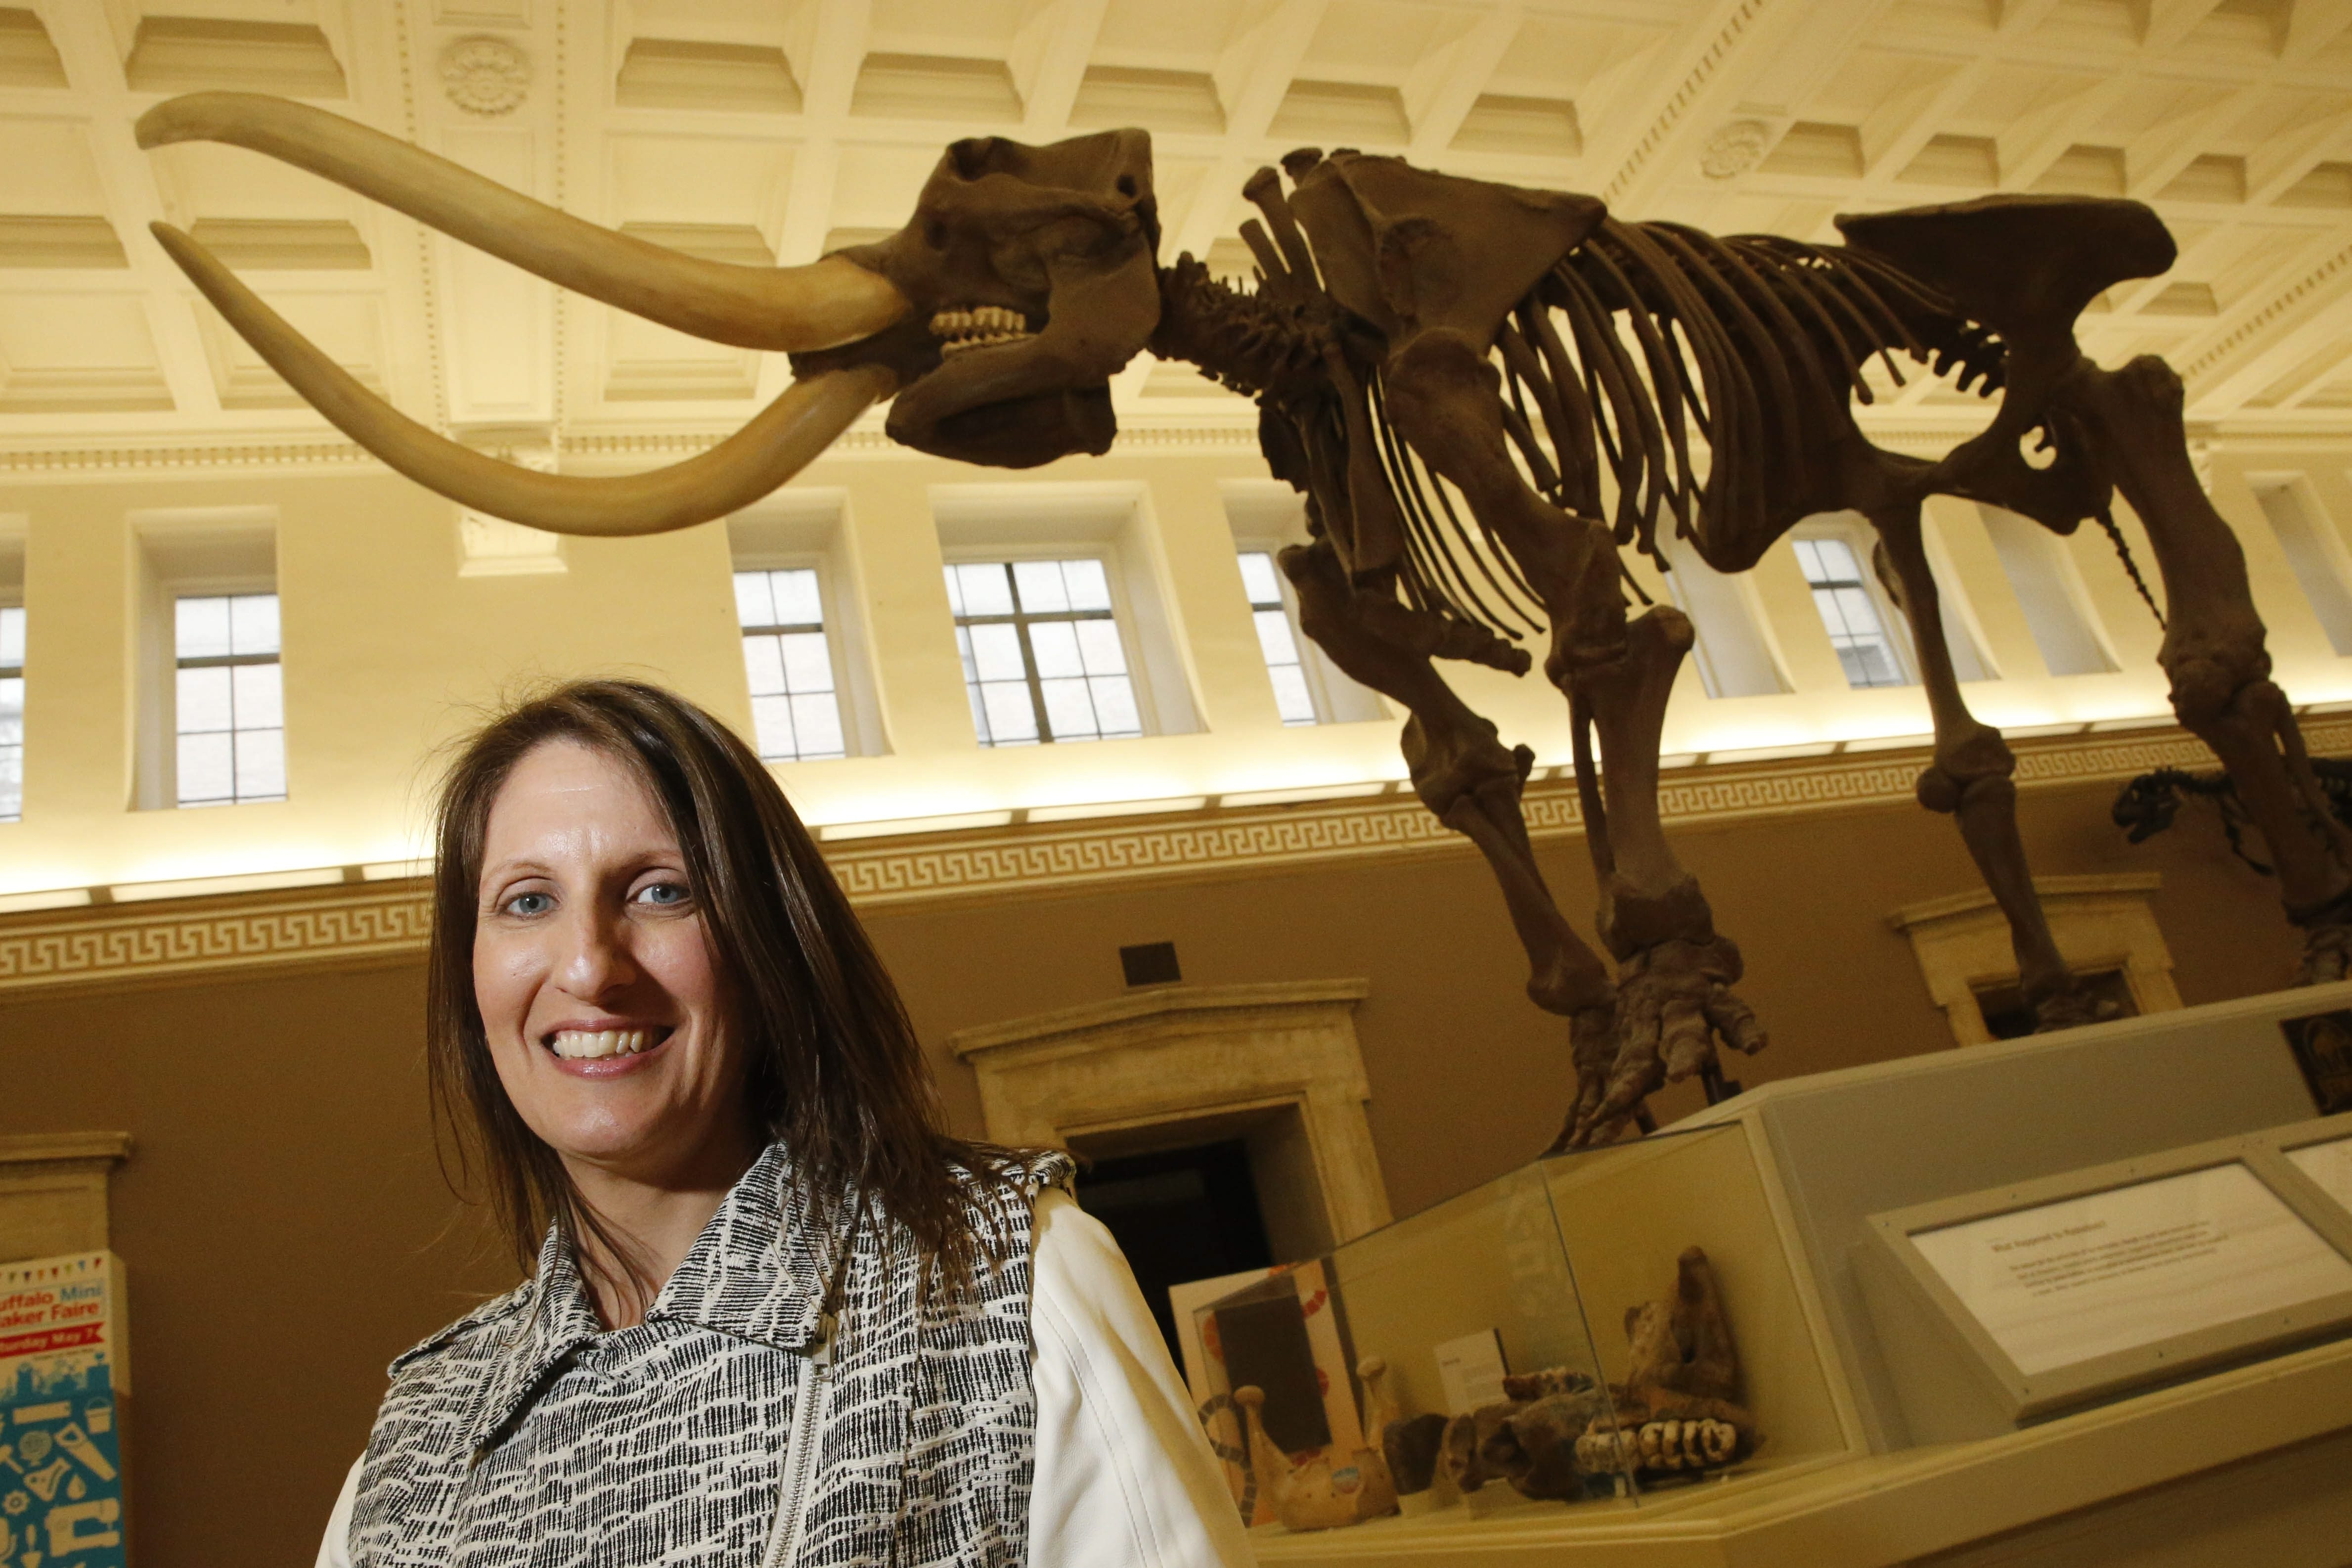 """Marisa Wigglesworth, new president and CEO of the Buffalo Museum of Science, was introduced at a news conference Monday. The job """"sits at the intersection of … issues highly meaningful to me,"""" she said, citing importance of science, technology, engineering and math education."""